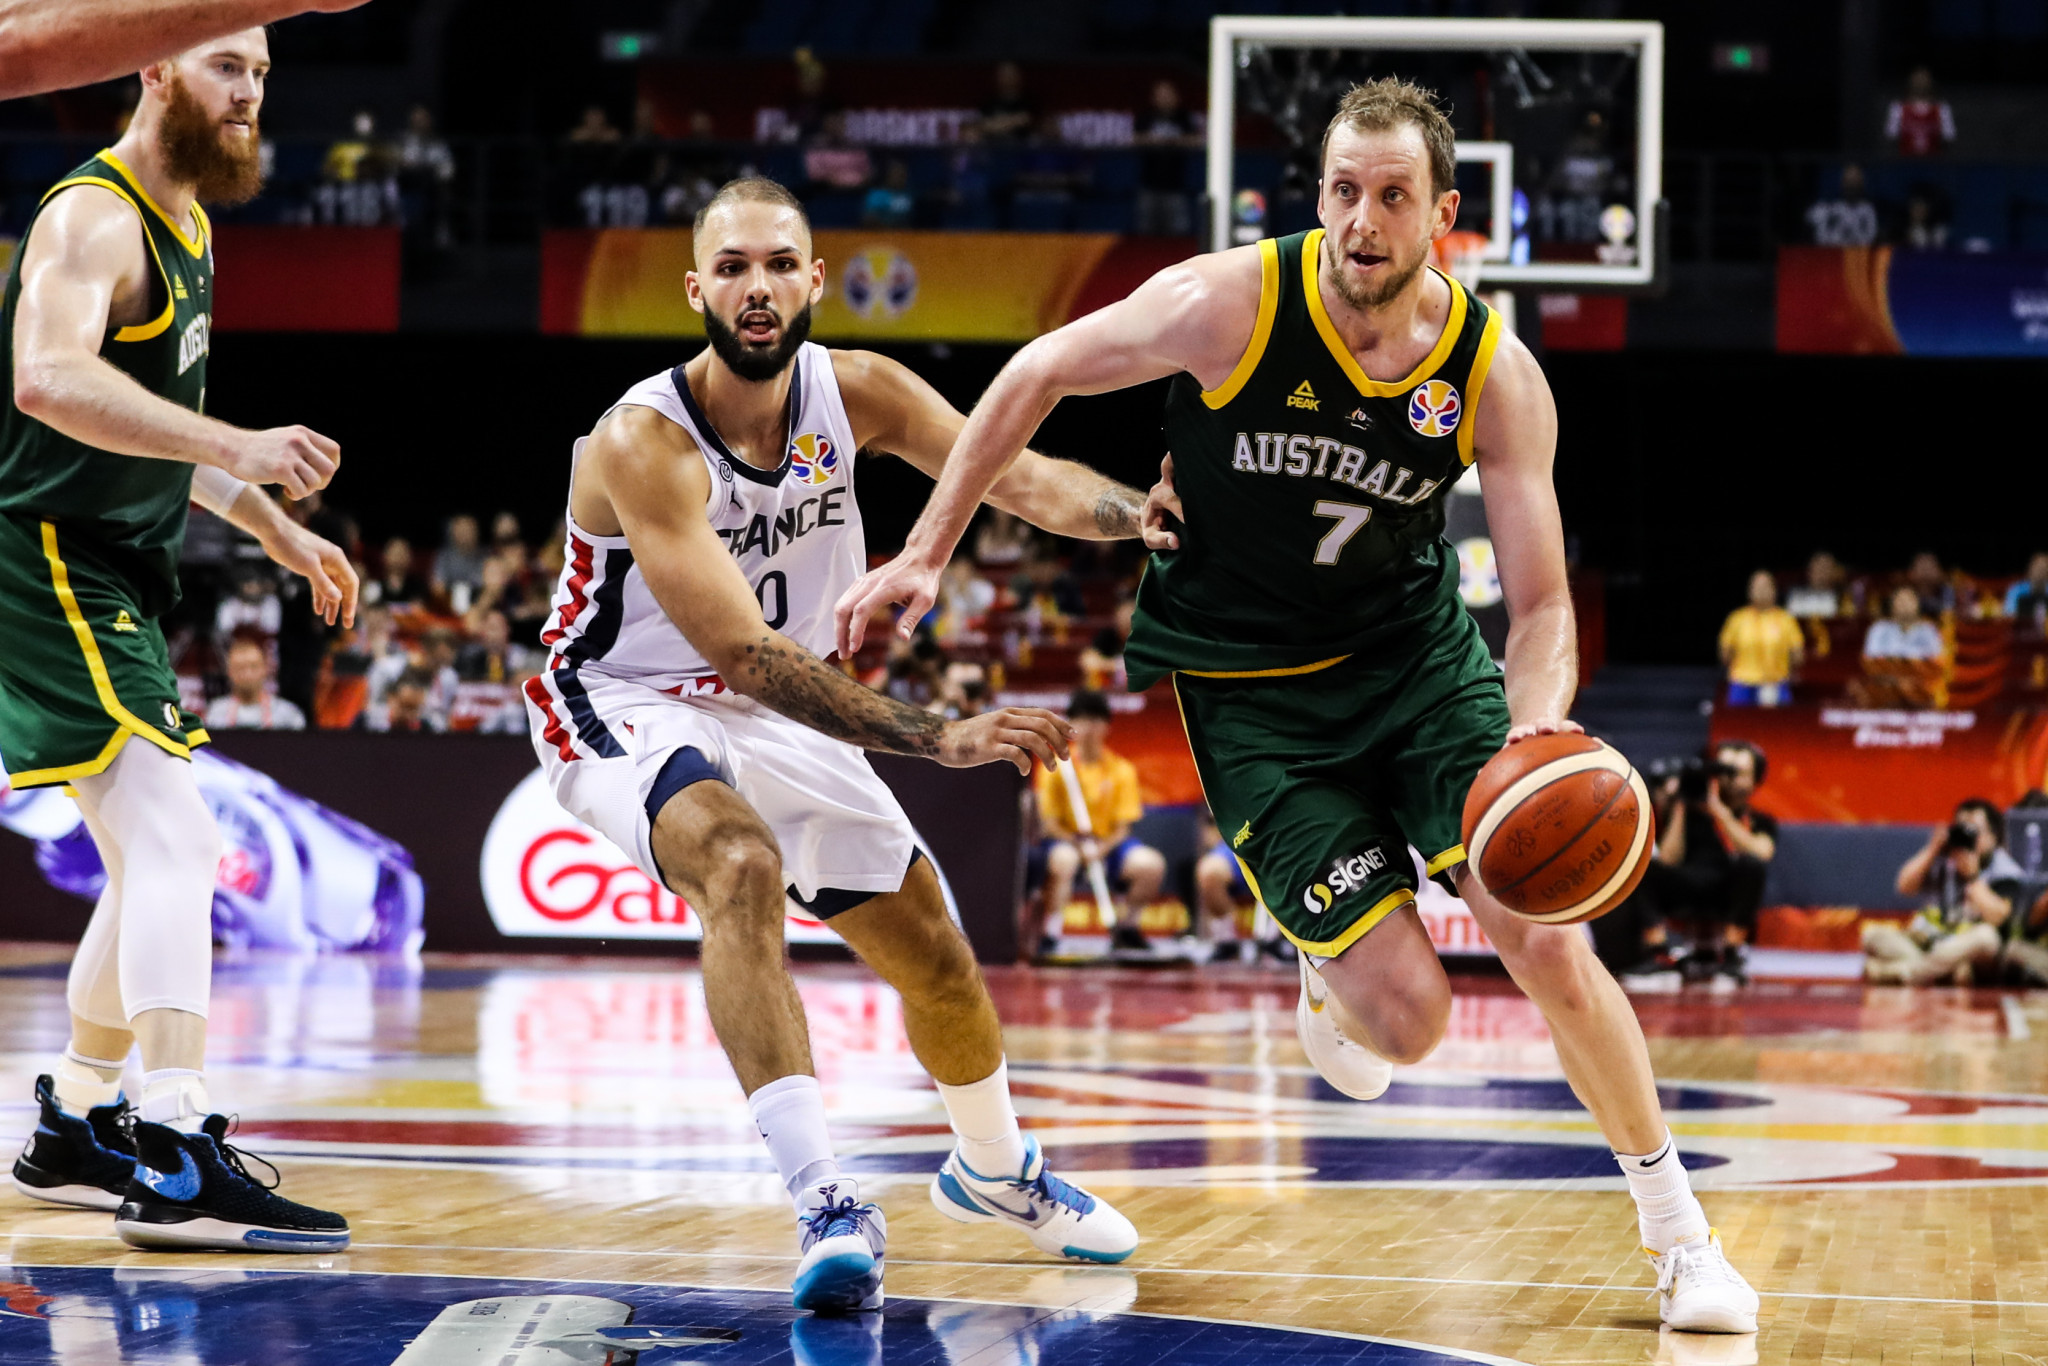 Ingles determined to end Australia's basketball medal drought with Tokyo 2020 gold